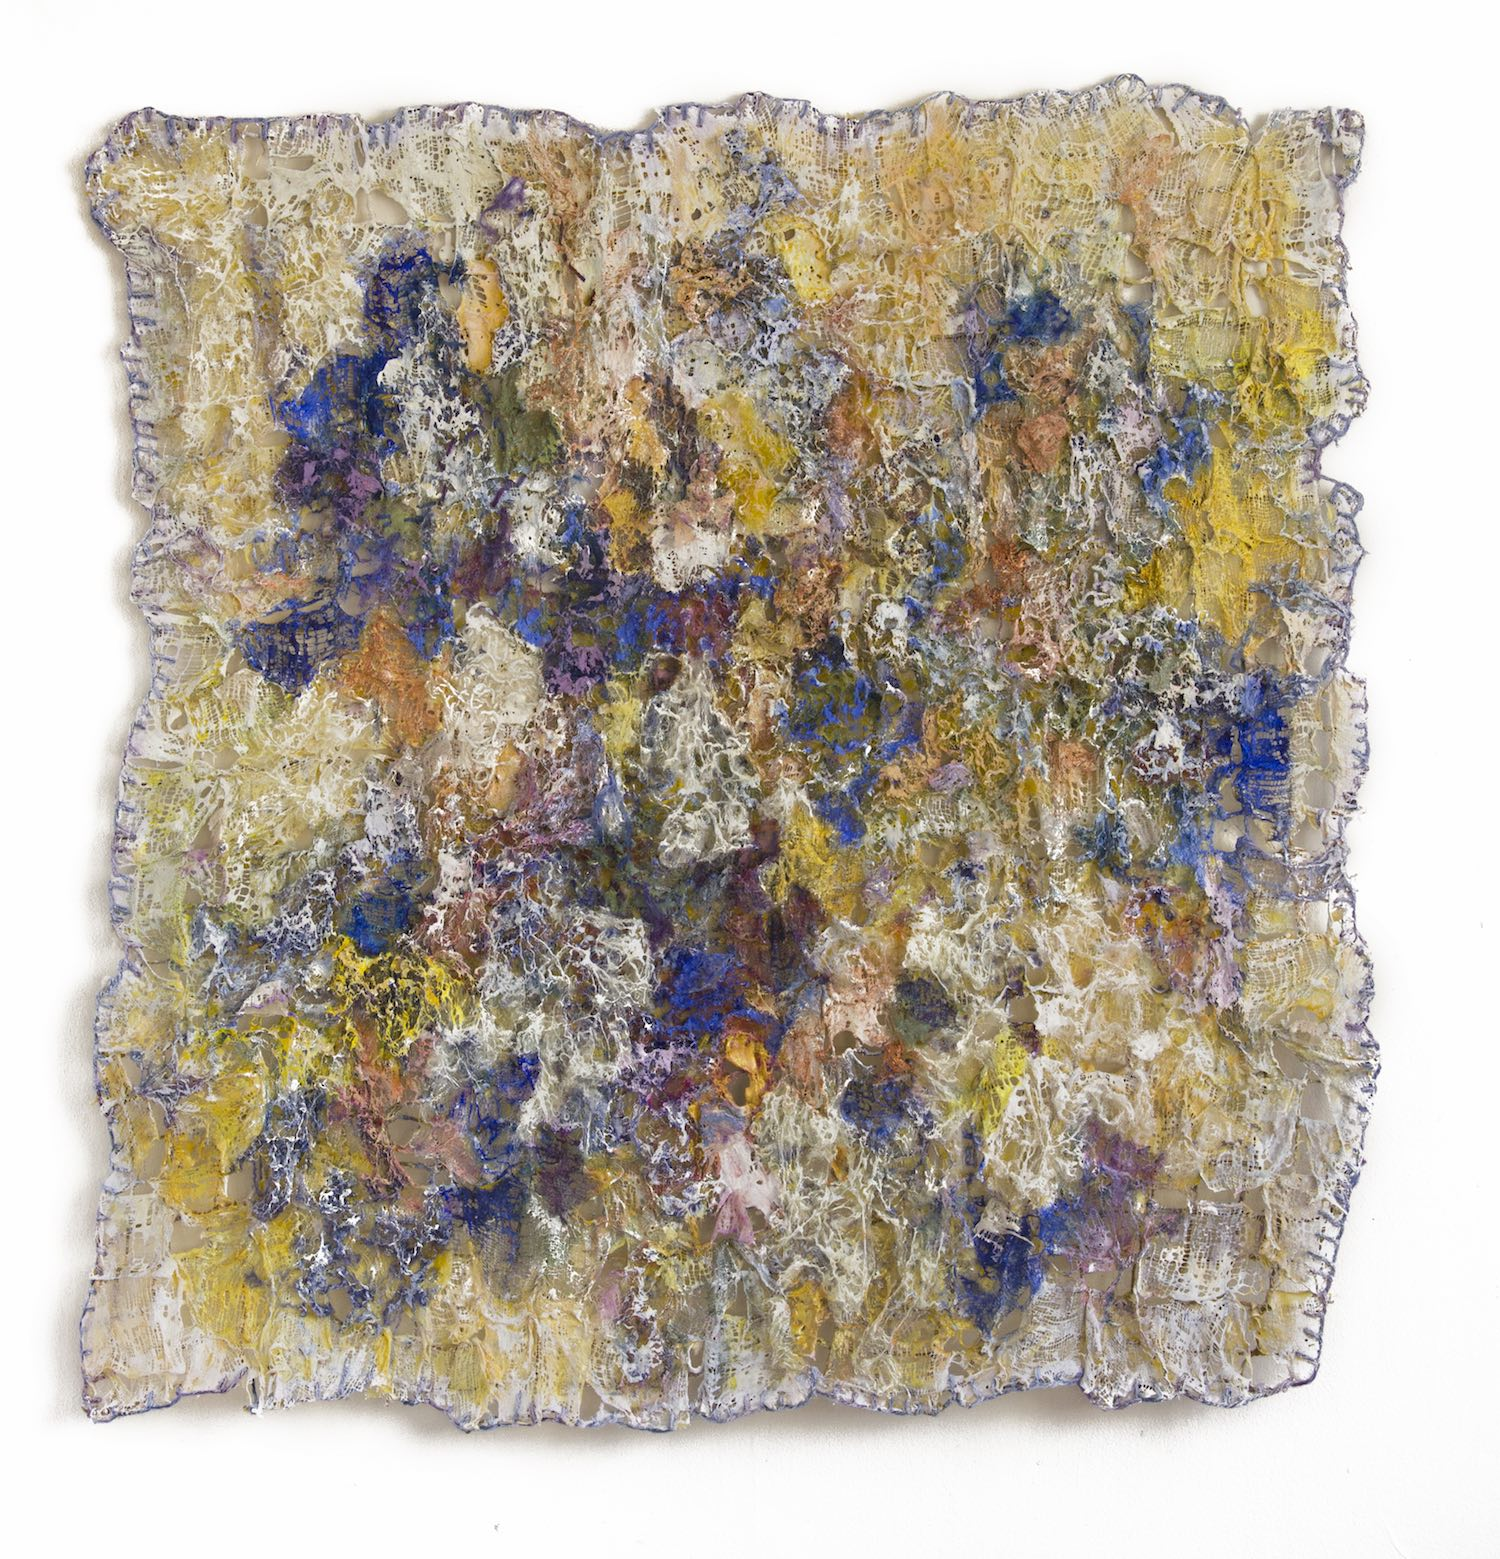 Nandita Mukand, 'Uncontained', 2018, cloth, wool, thread, acrylic, resin, hot glue, sand, 95 x 95 x 4cm. Image courtesy of the artist.